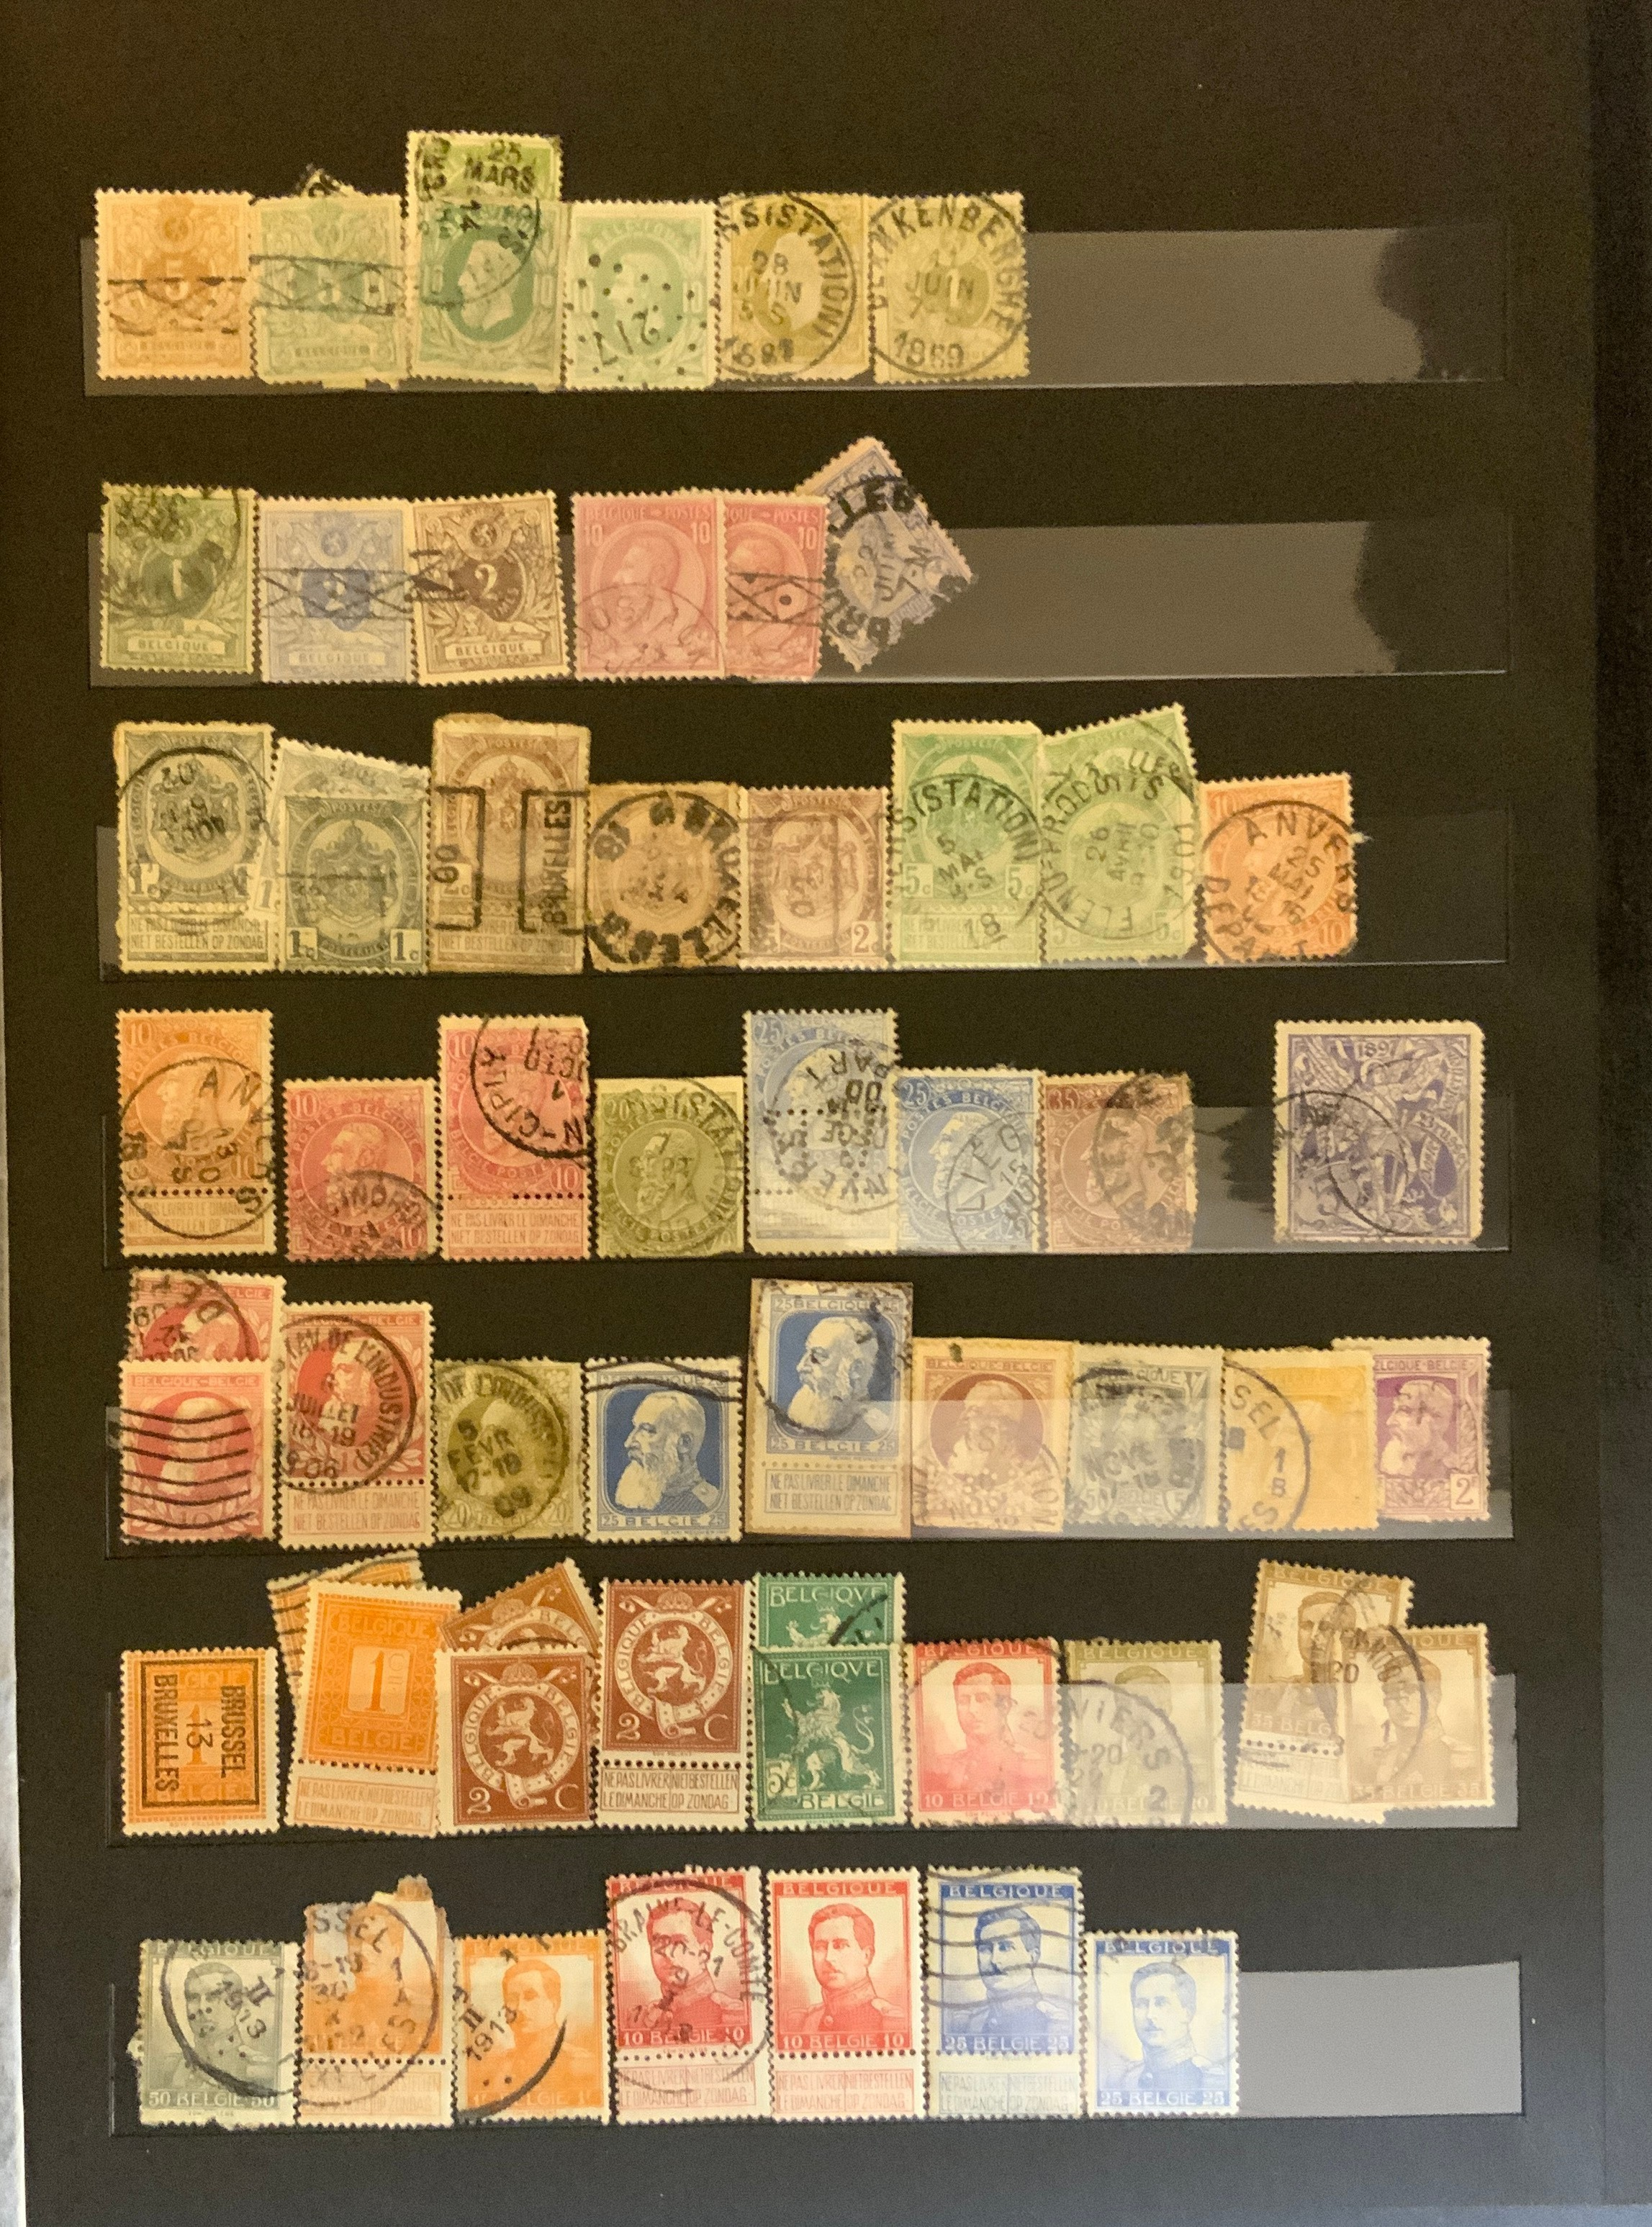 STOCKBOOK WITH STAMPS FROM VARIOUS COUNTRIES INCLUDING AUSTRIA, BELGIUM, FRANCE - Image 12 of 16